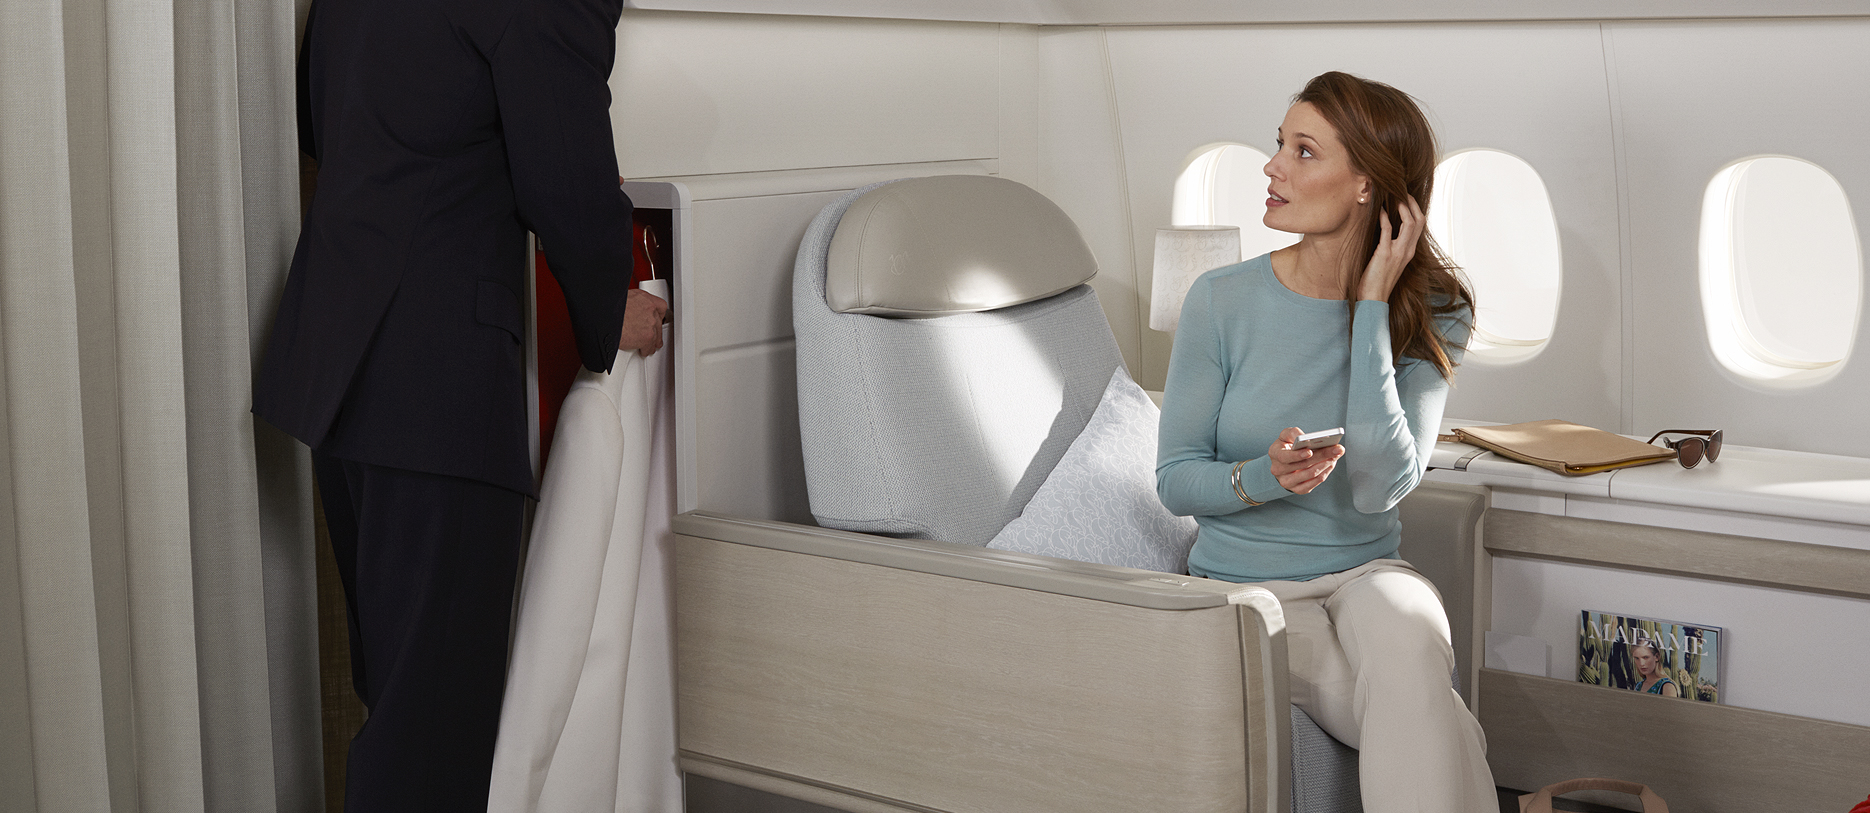 Air France joins the race for luxury supremacy in air unveils La Premiere first class suites